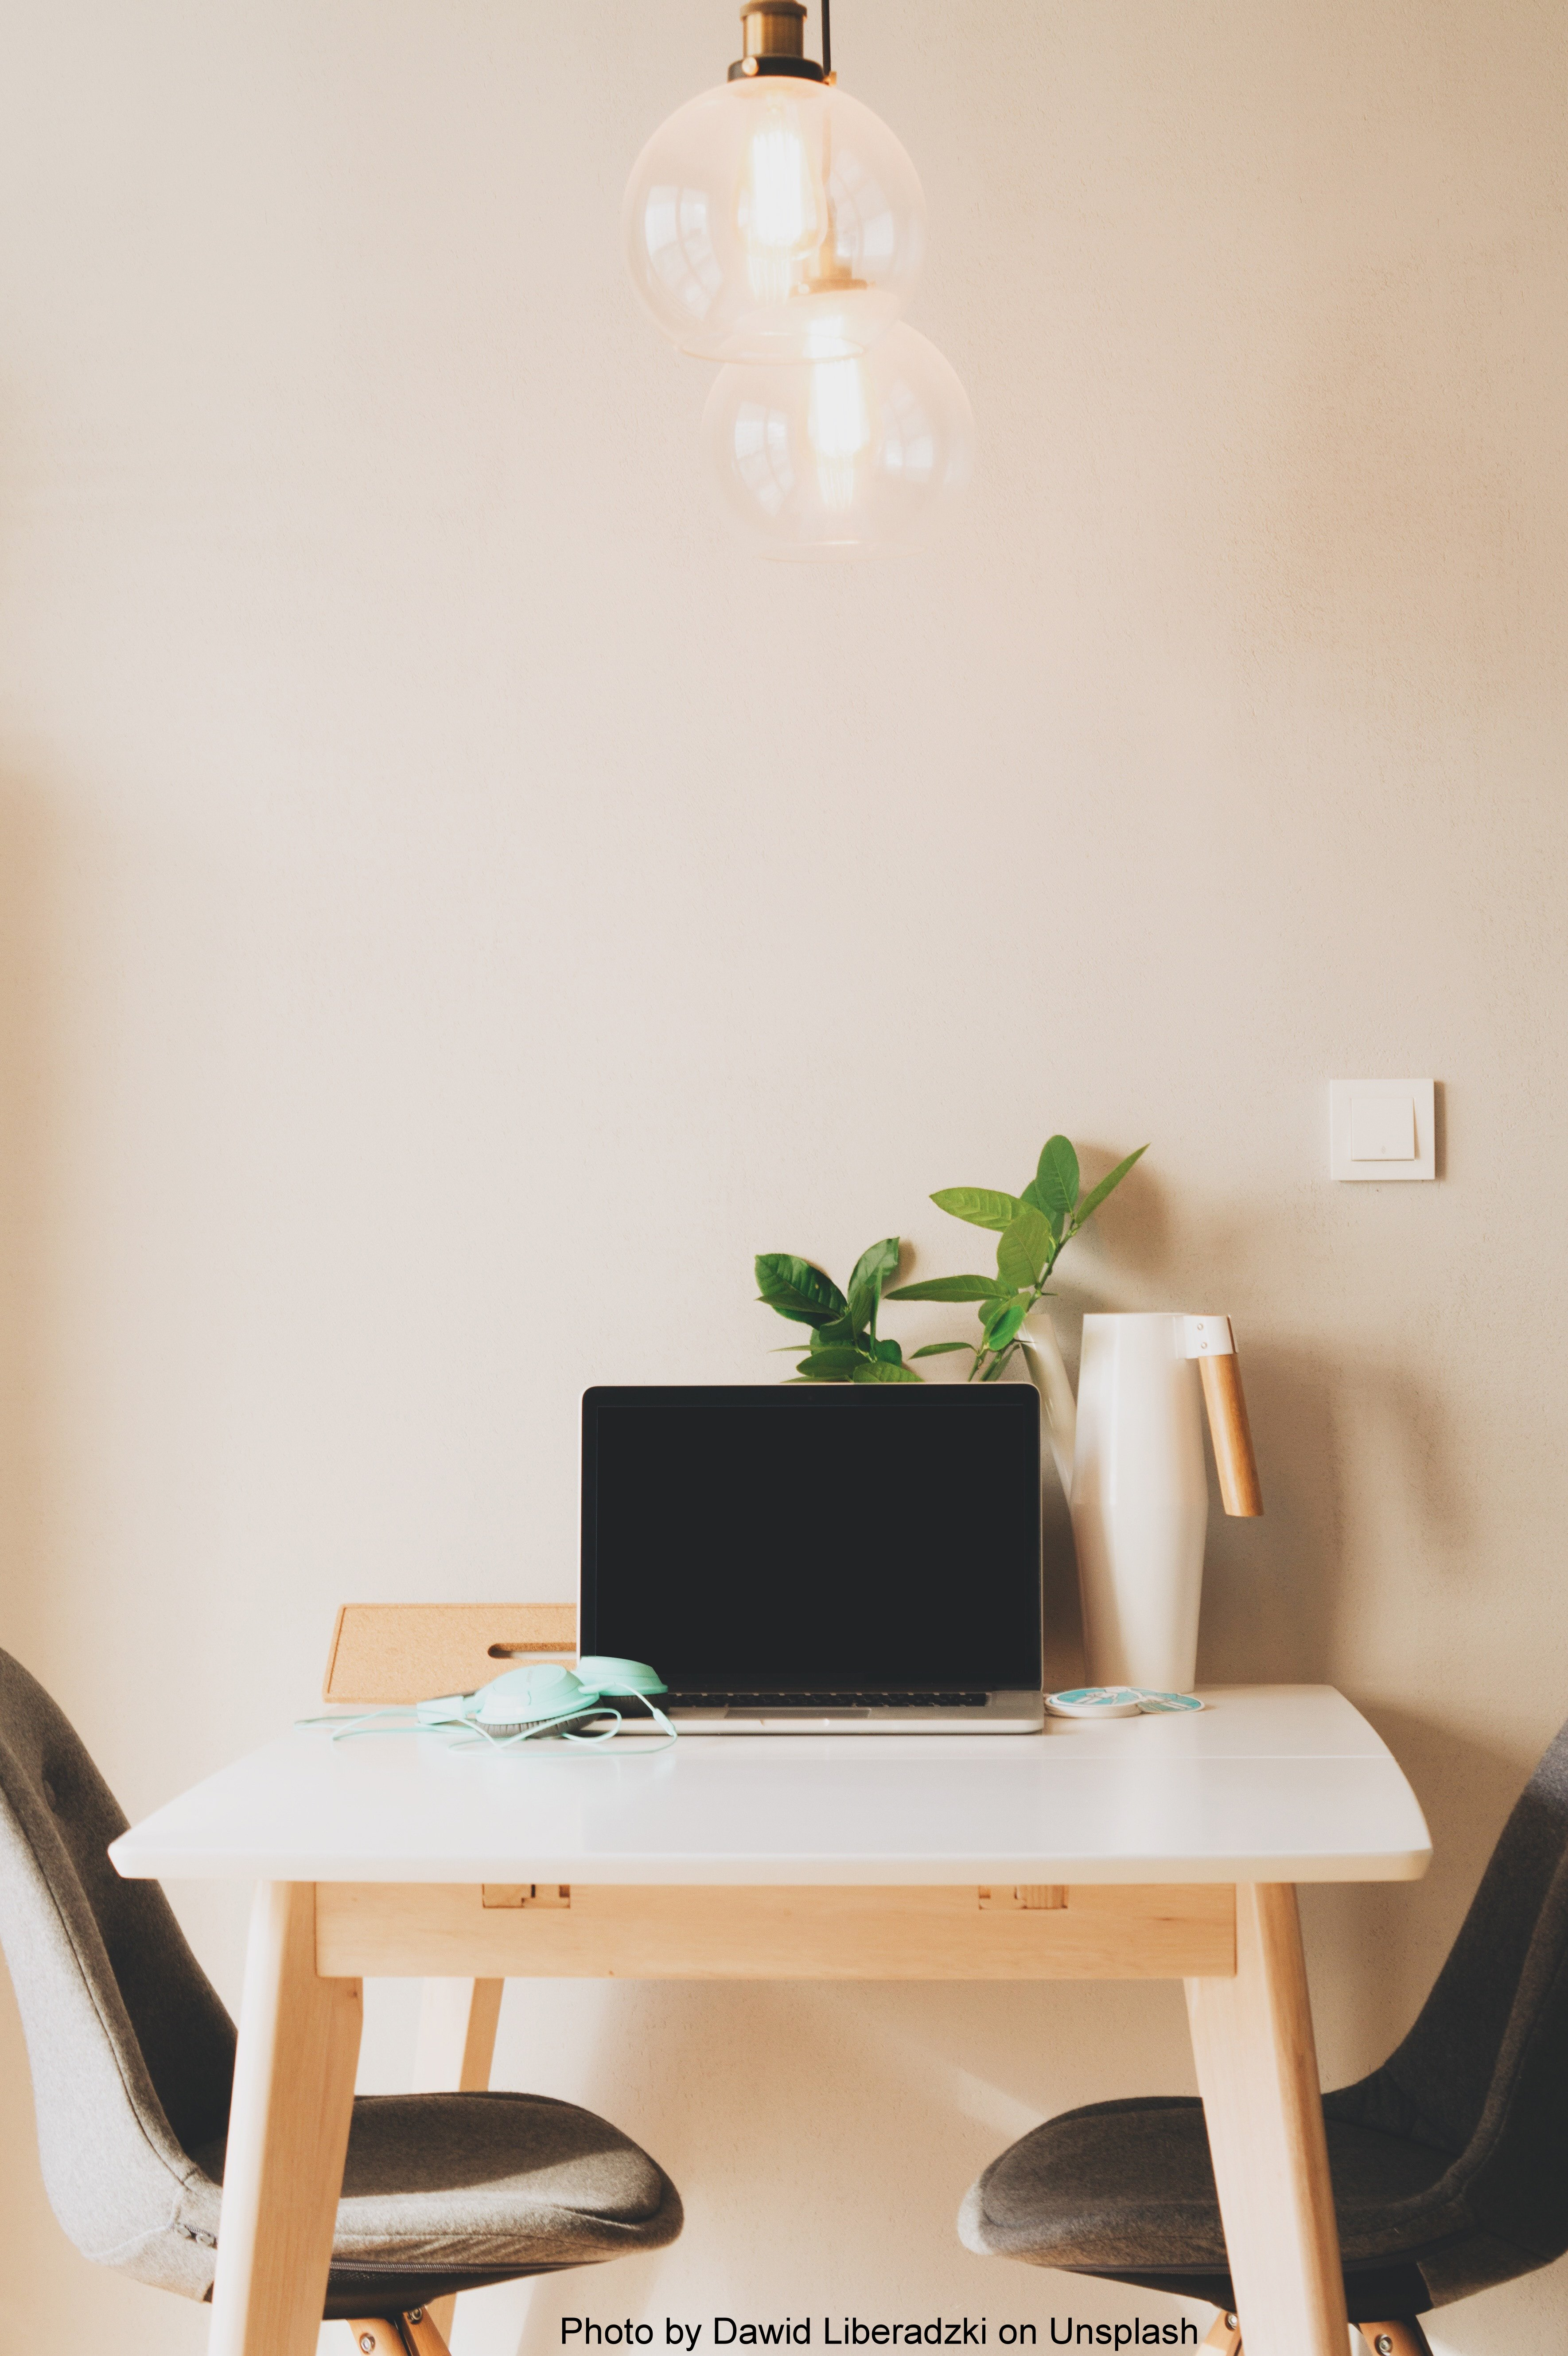 A desk and two chairs, pushed against a baren, white wall. On the table is an opened laptop, a pair of seafoam colored headphones, a white canister, and a plant. Above the desk are two, lit lightbulbs, powered by a motion sensor switch, above and to the right of the table